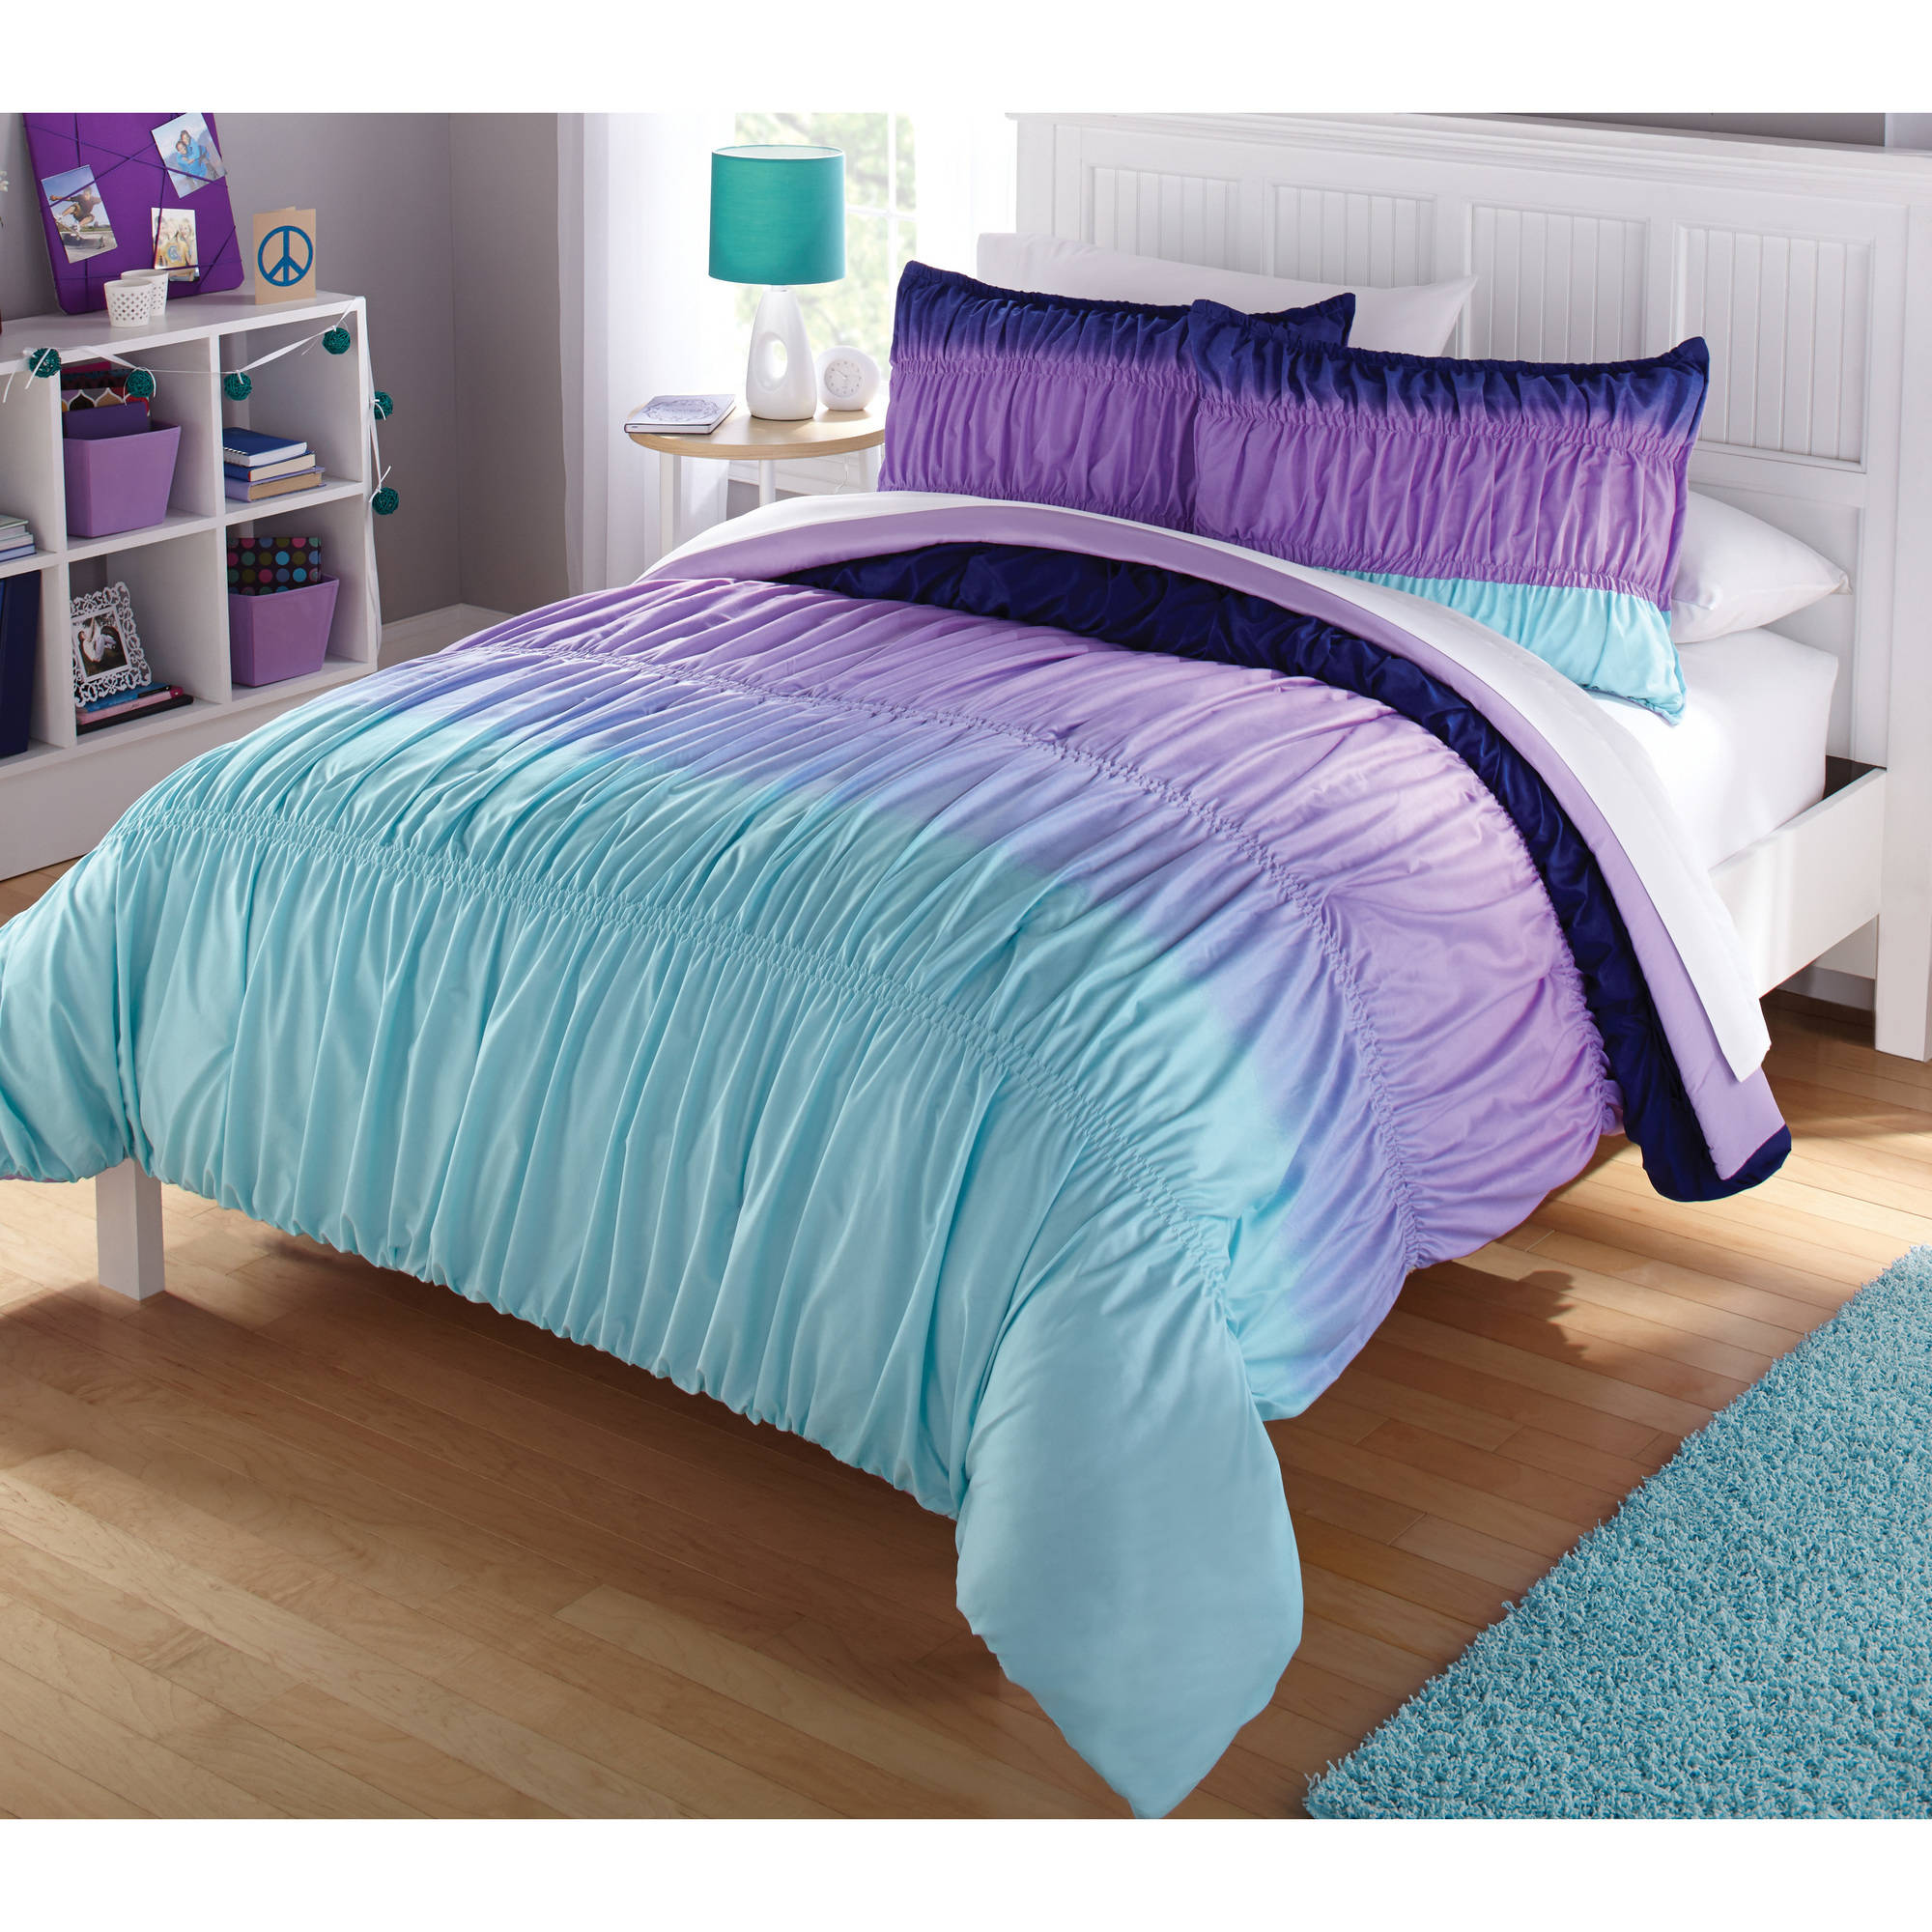 Deep Purple Comforter Set | Purple Comforter Sets | Purple Comforters Sets